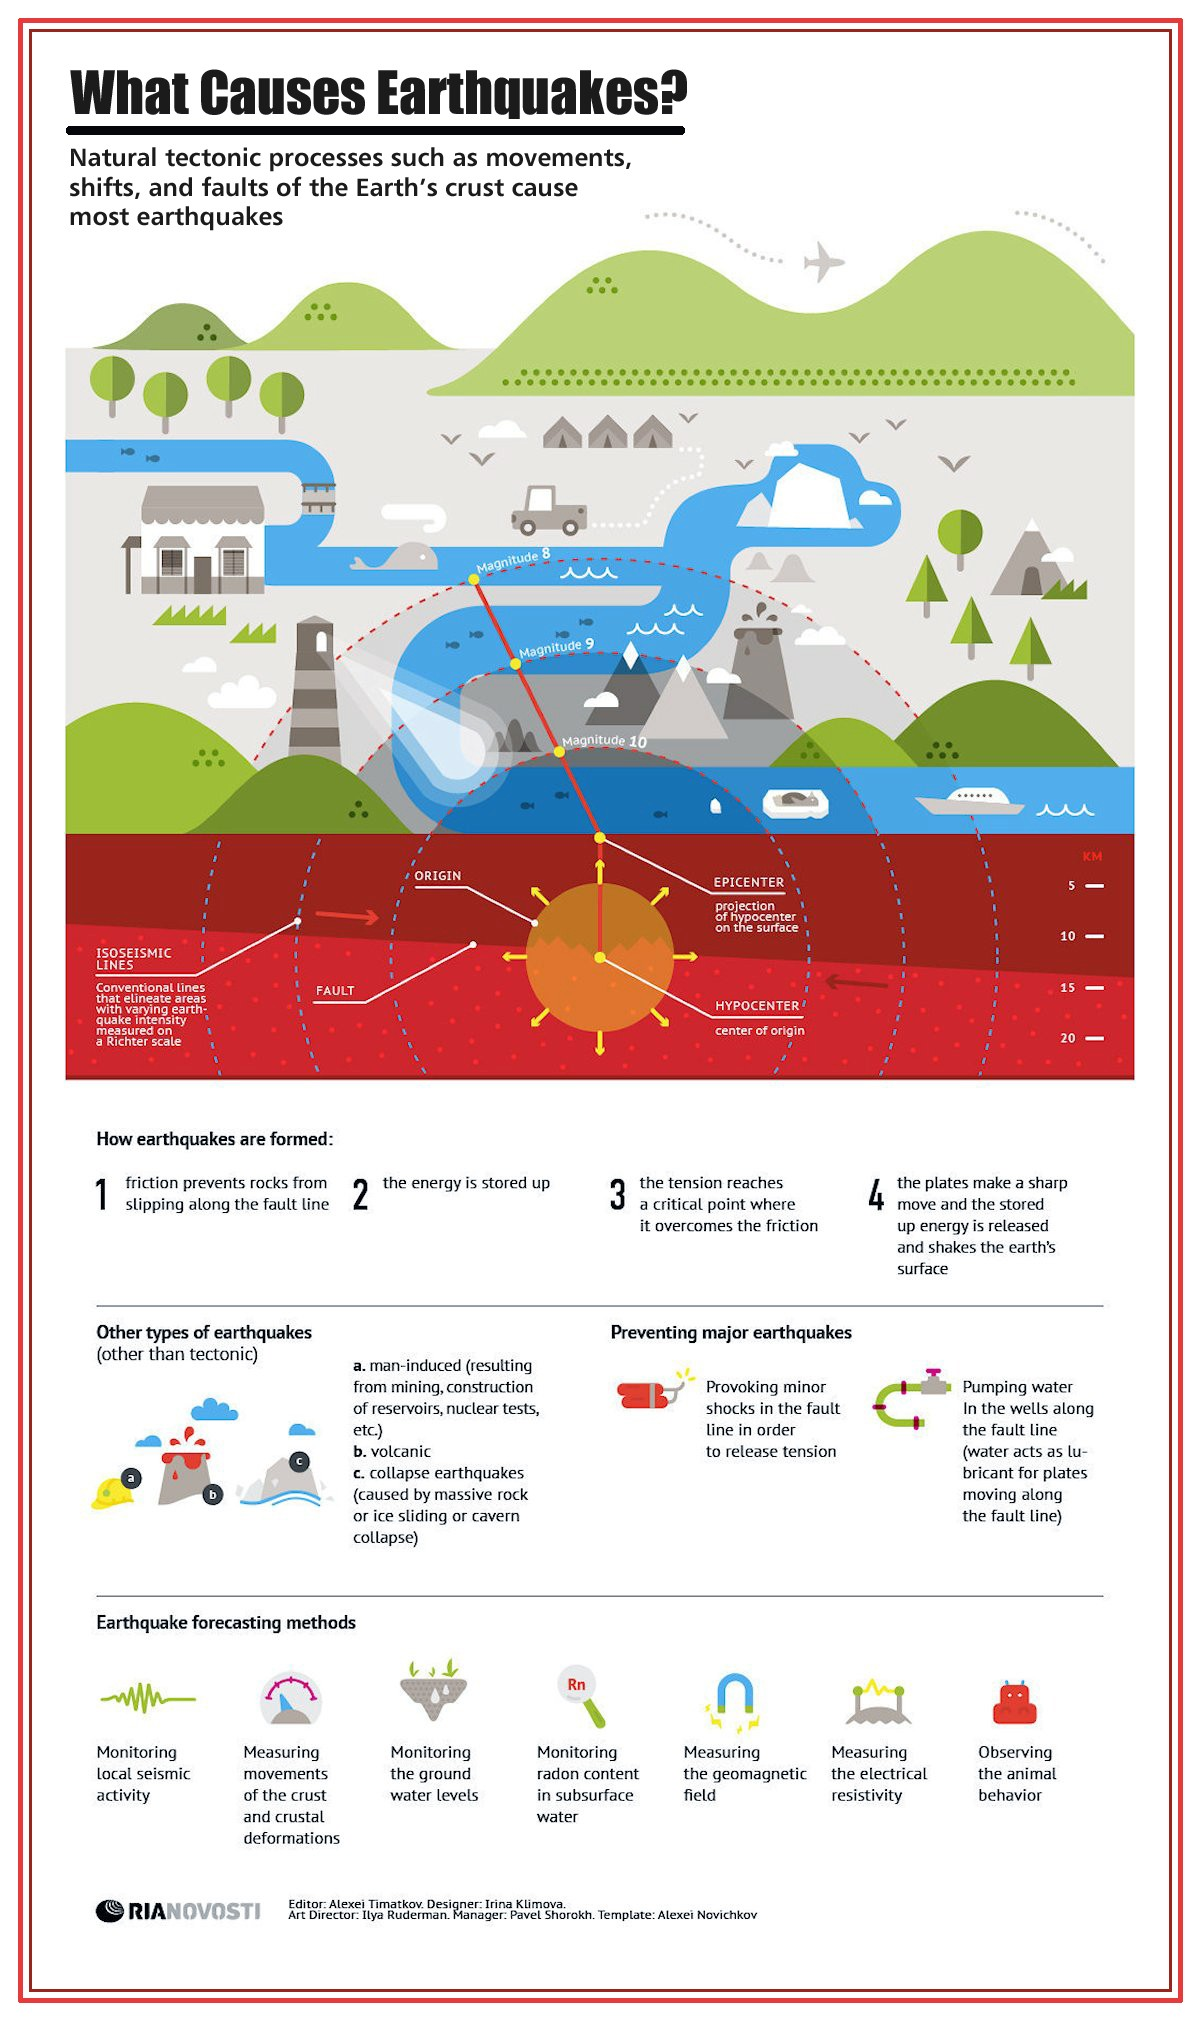 00 RIA-Novosti Infographics. What Causes Earthquakes. 2013